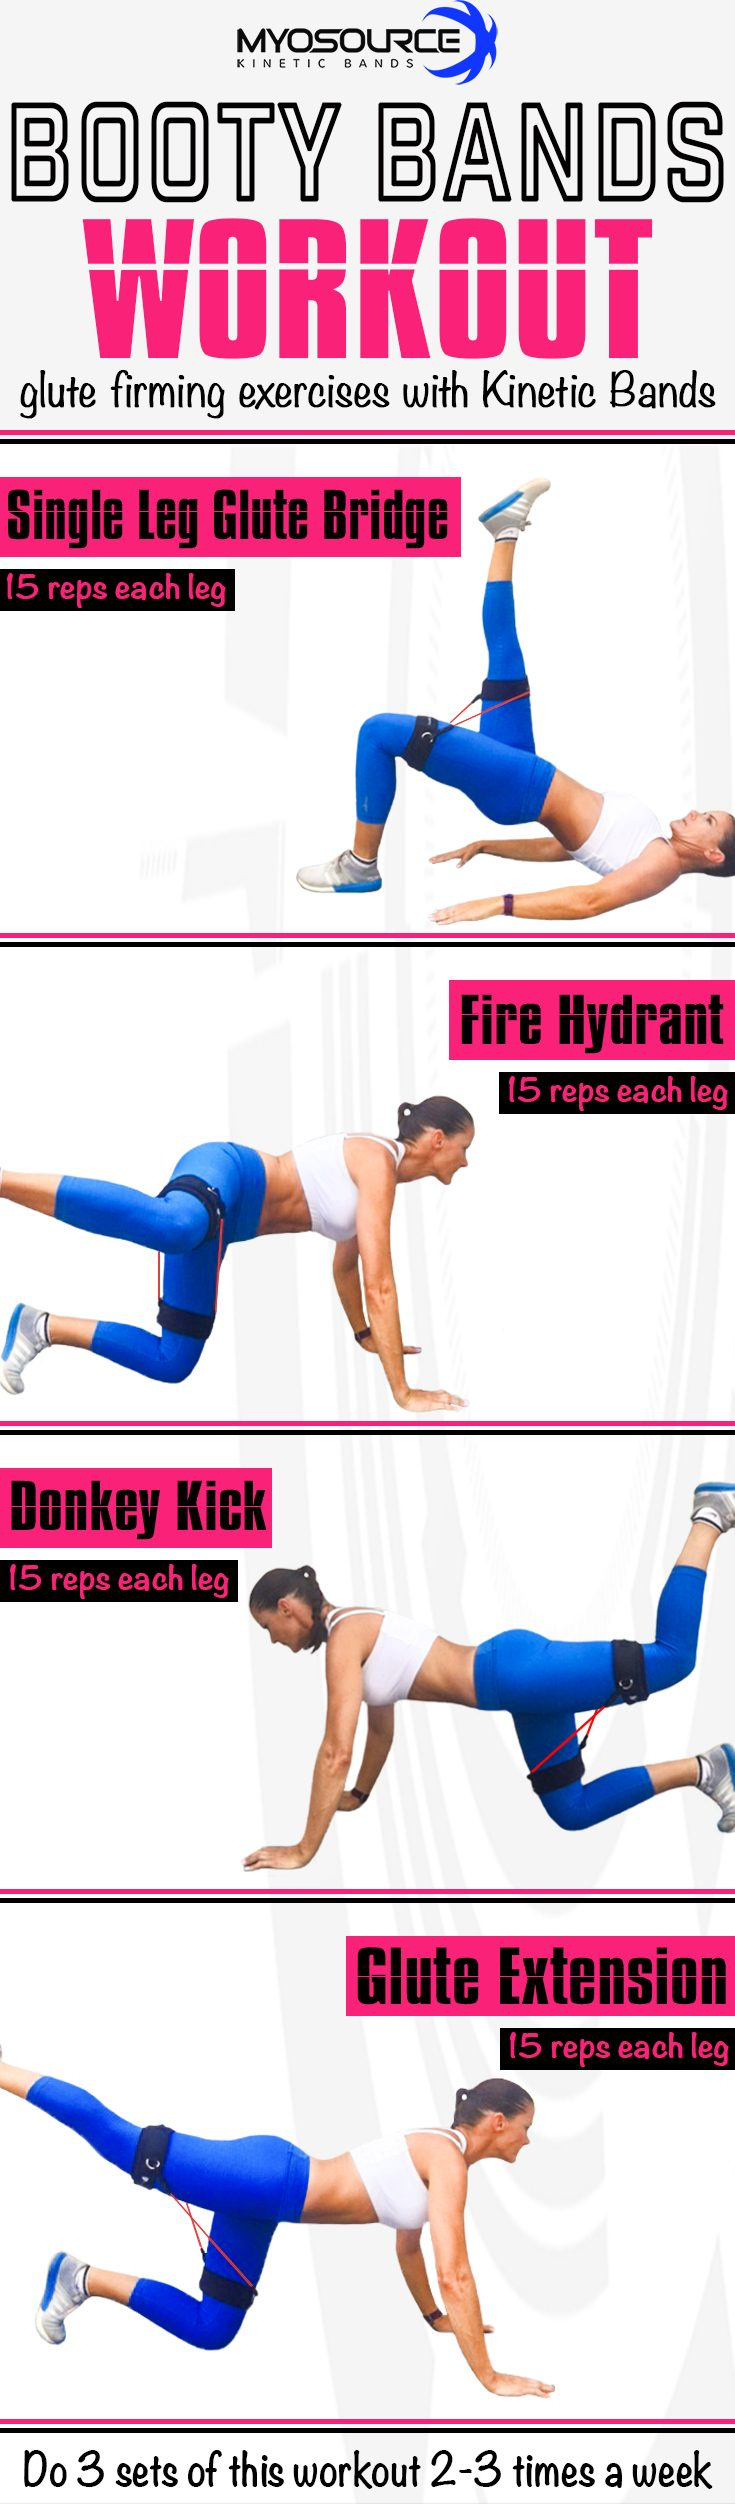 booty-bands-butt-workout-for-pinterest.jpg